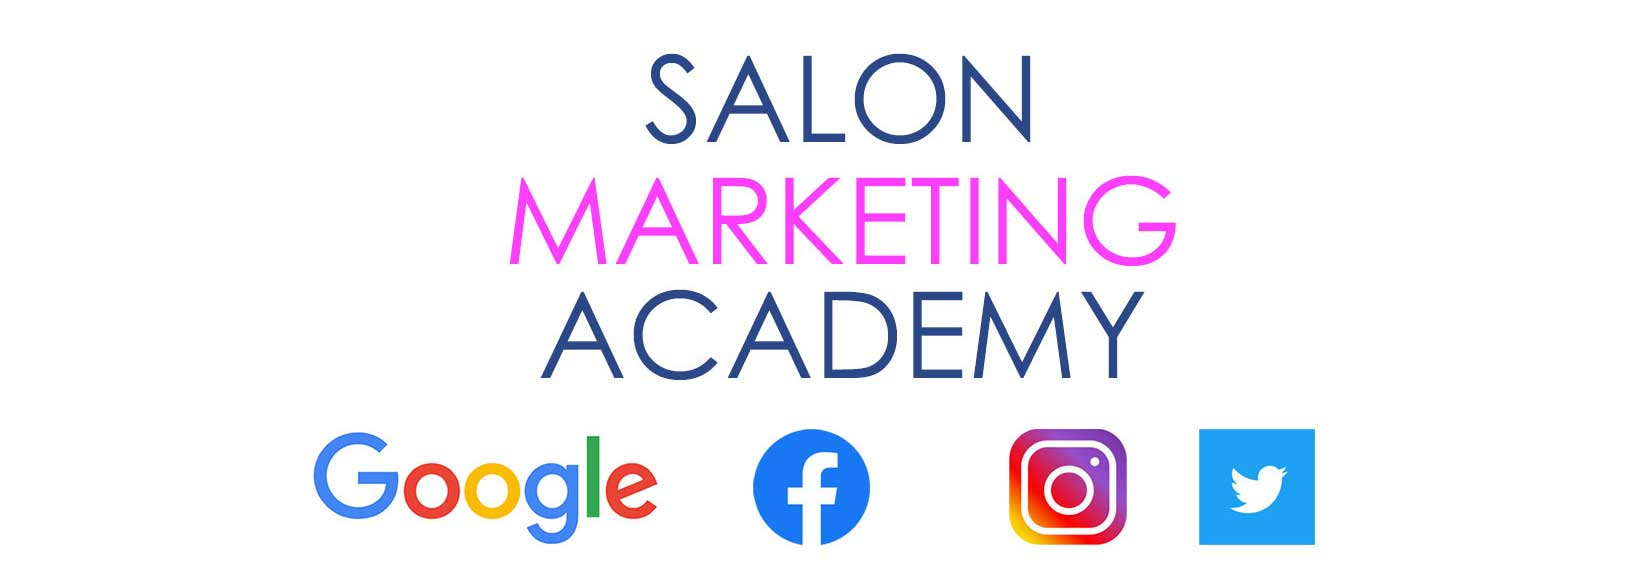 free salon marketing help and tips